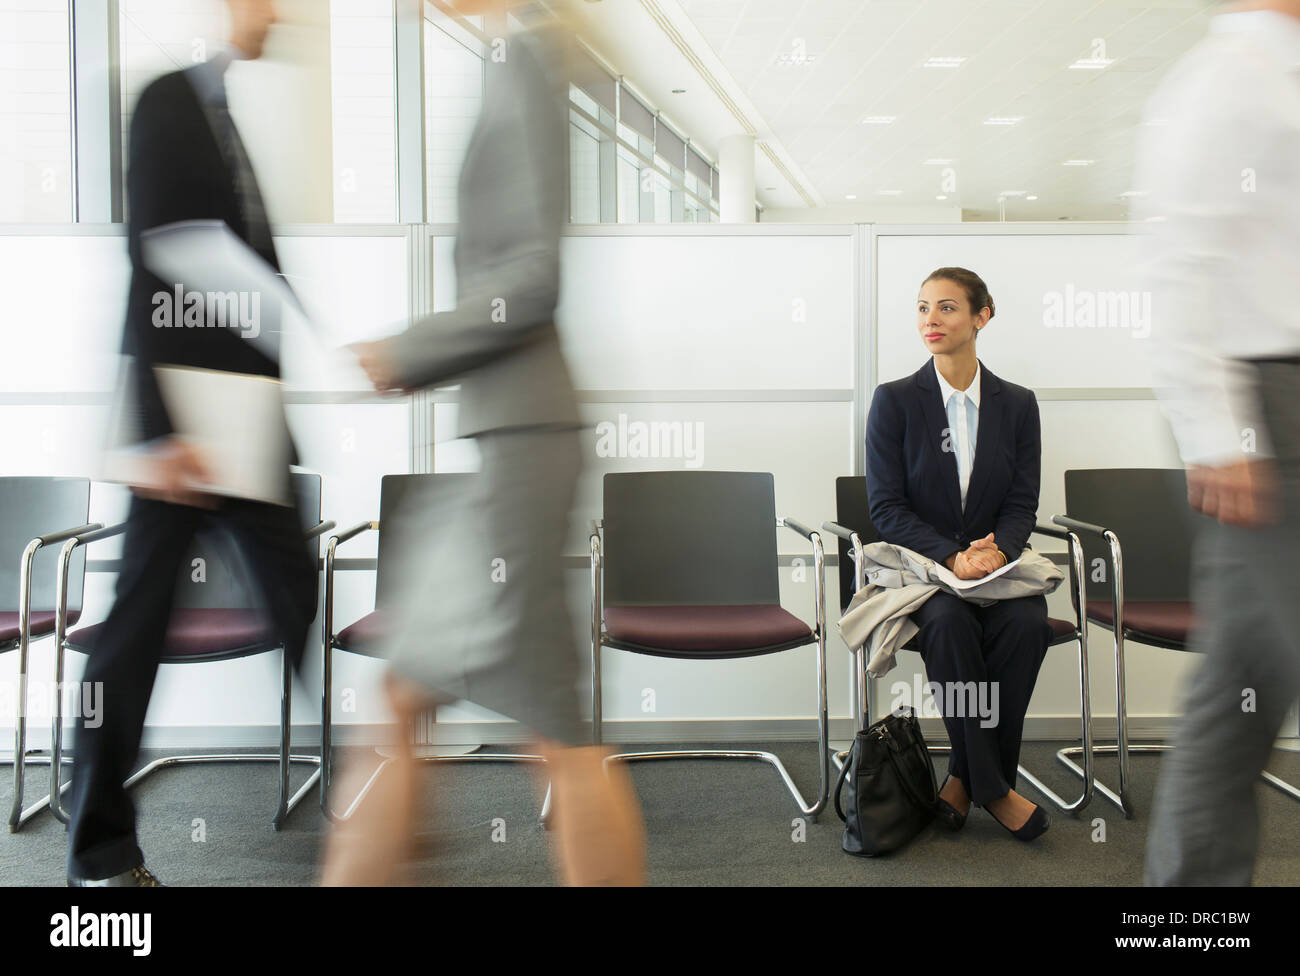 Businesswoman sitting in busy waiting area - Stock Image